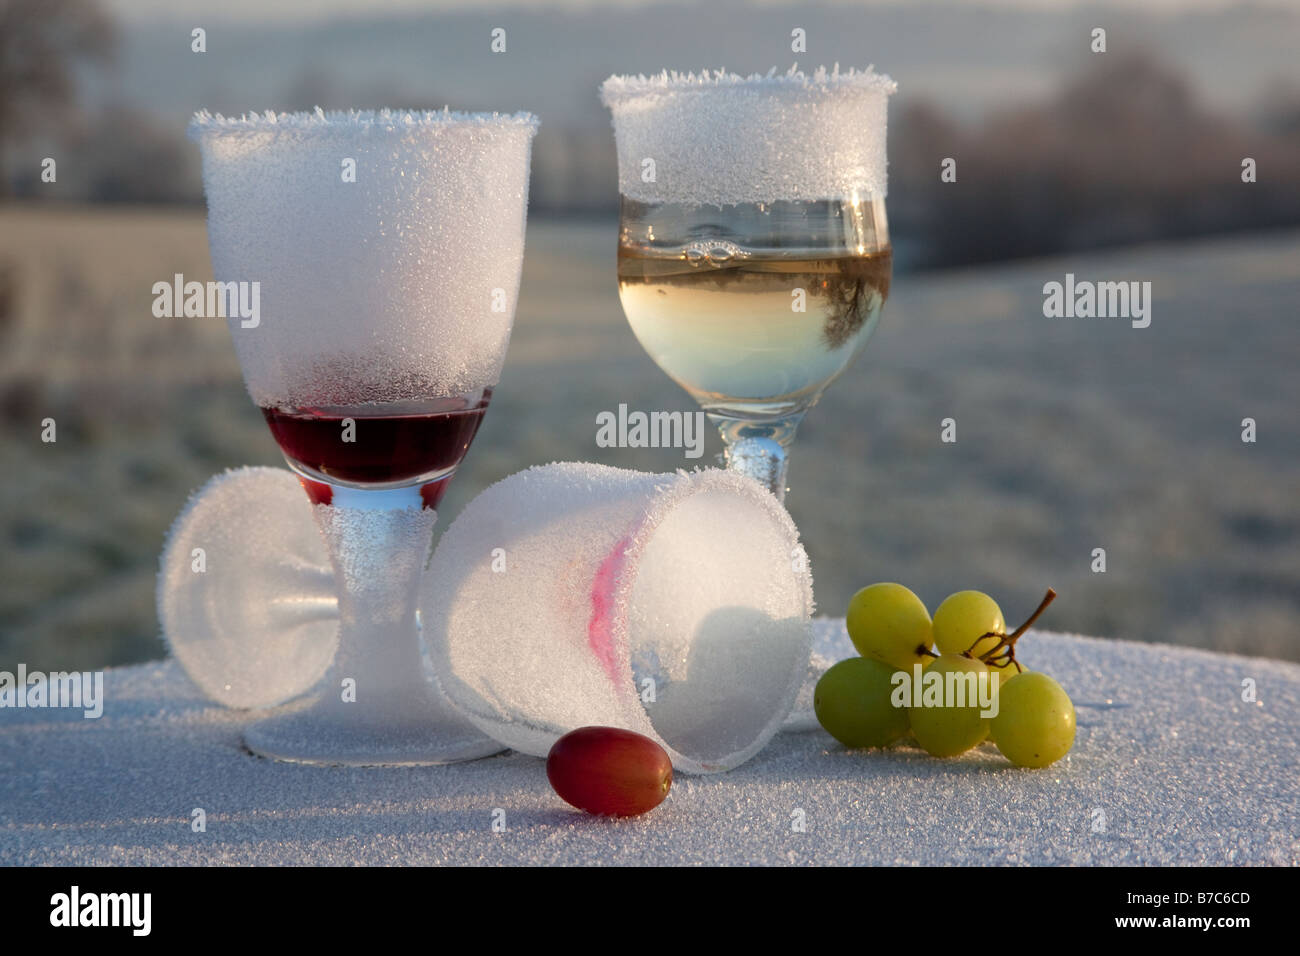 Morning-after-night-before frosted and broken wine glass party remains in frozen countryside UK - Stock Image